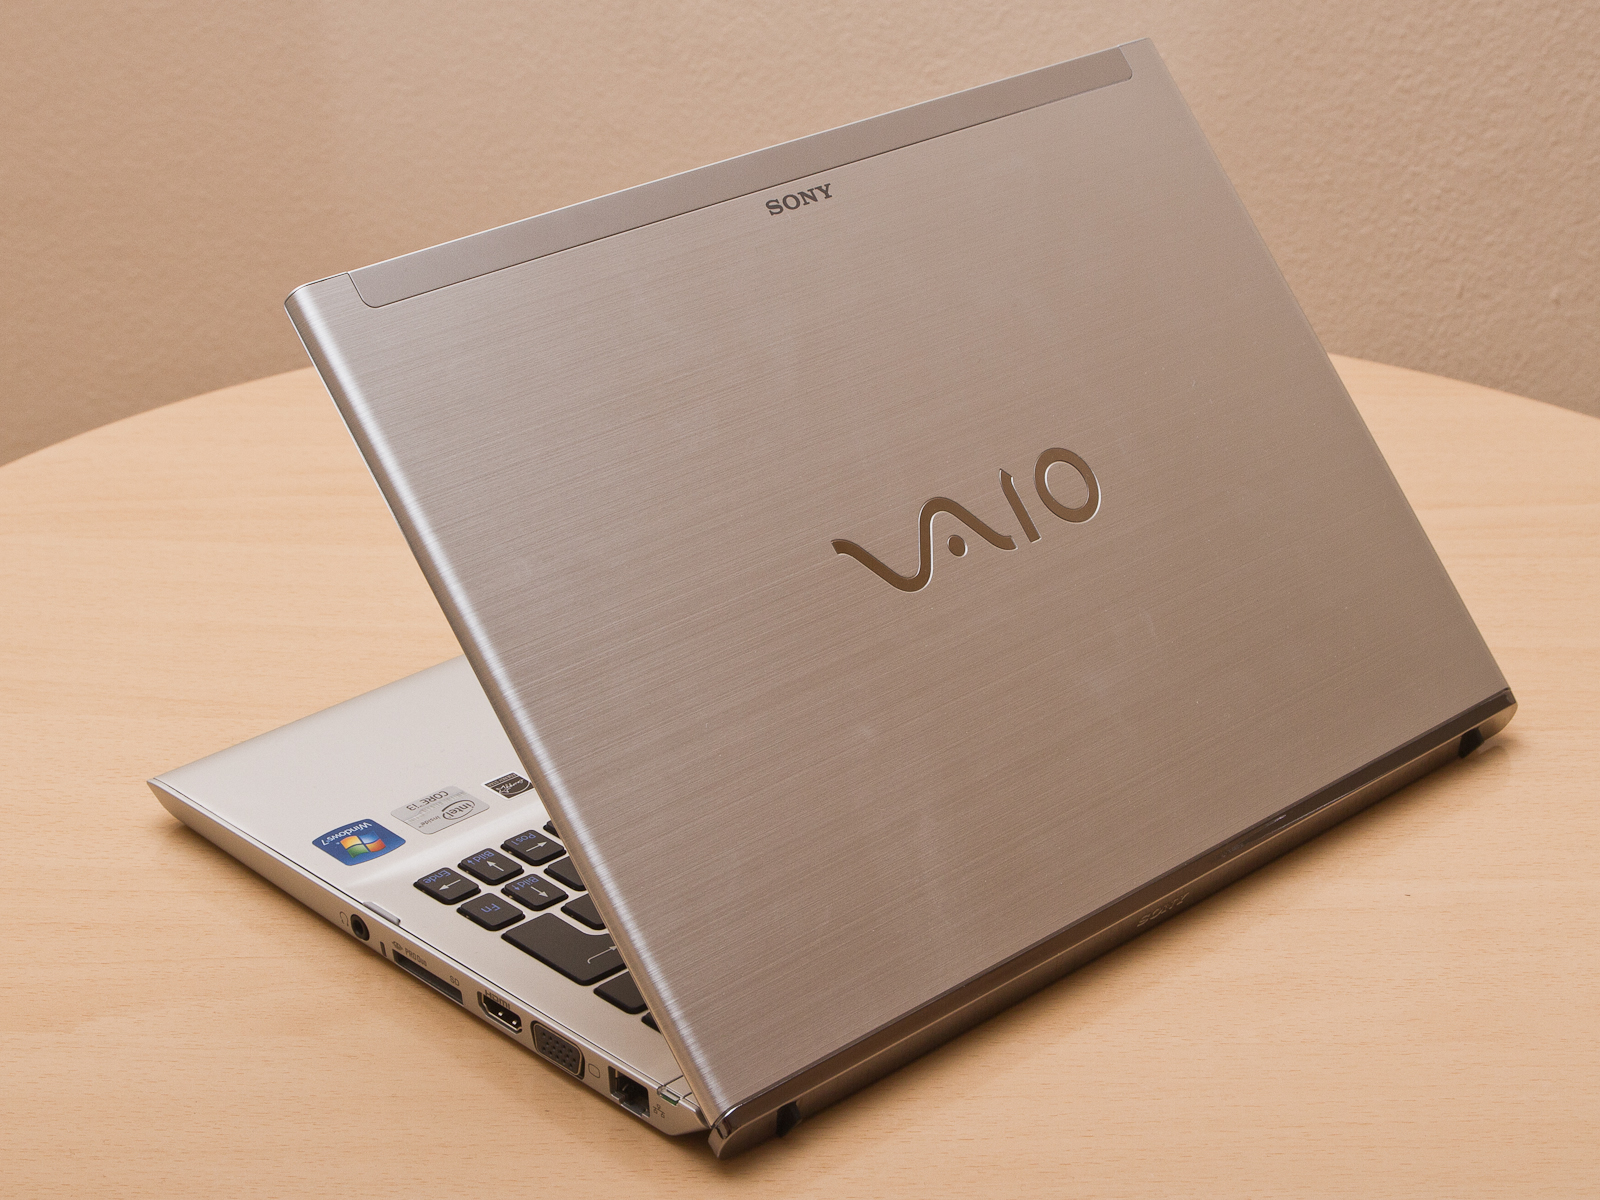 sony vaio i3 laptop boot menu key